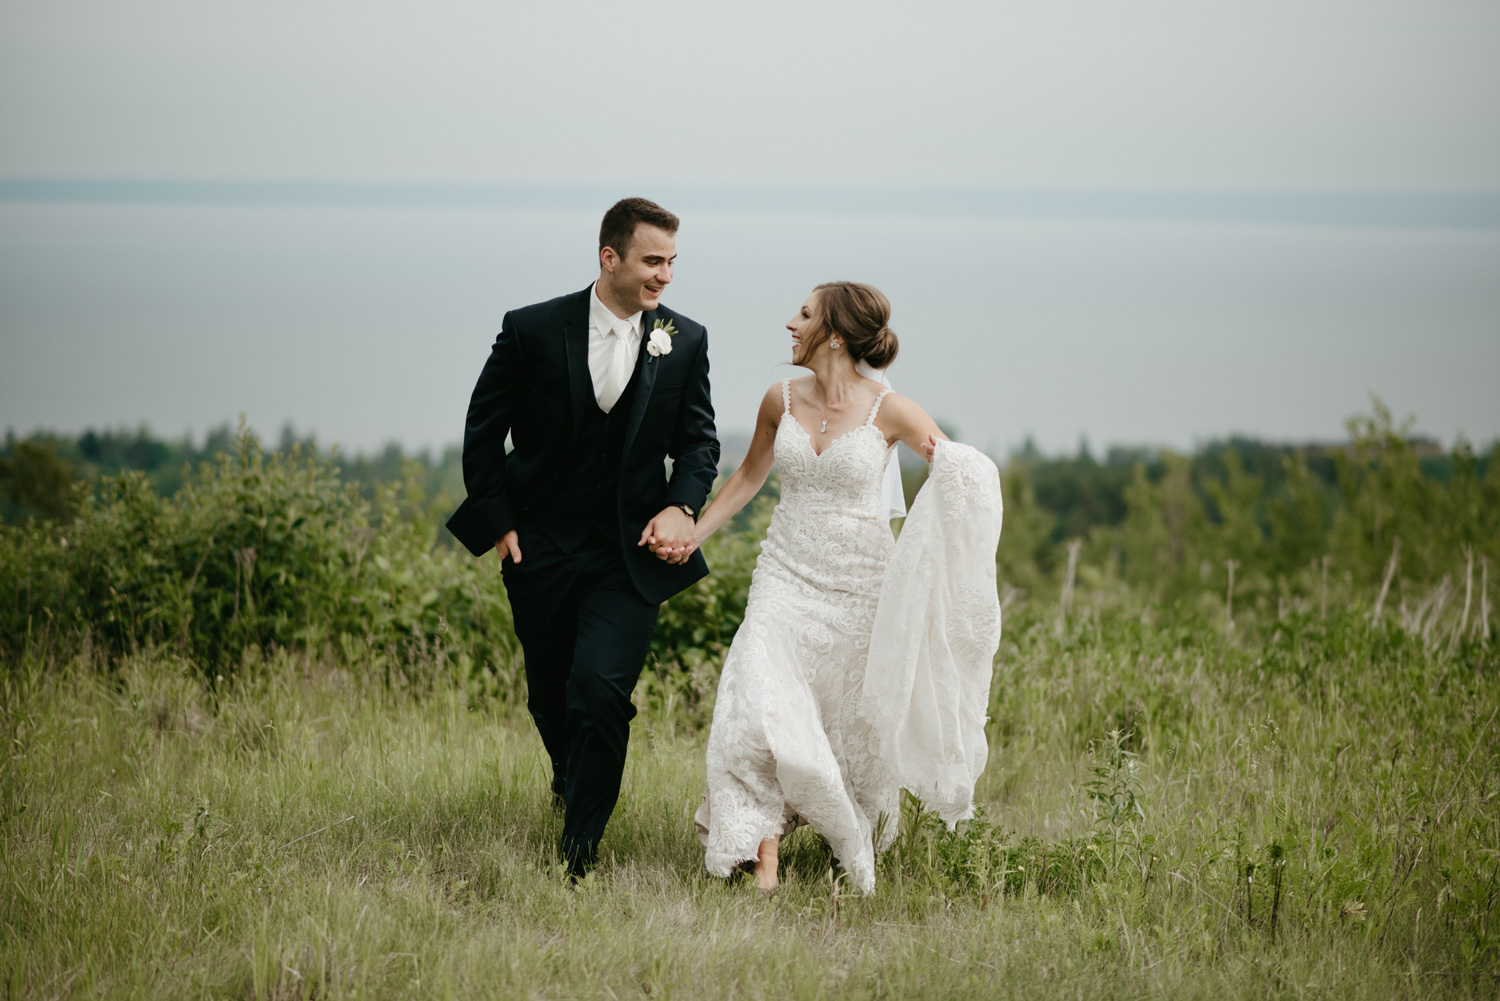 Bride and groom running together in a field